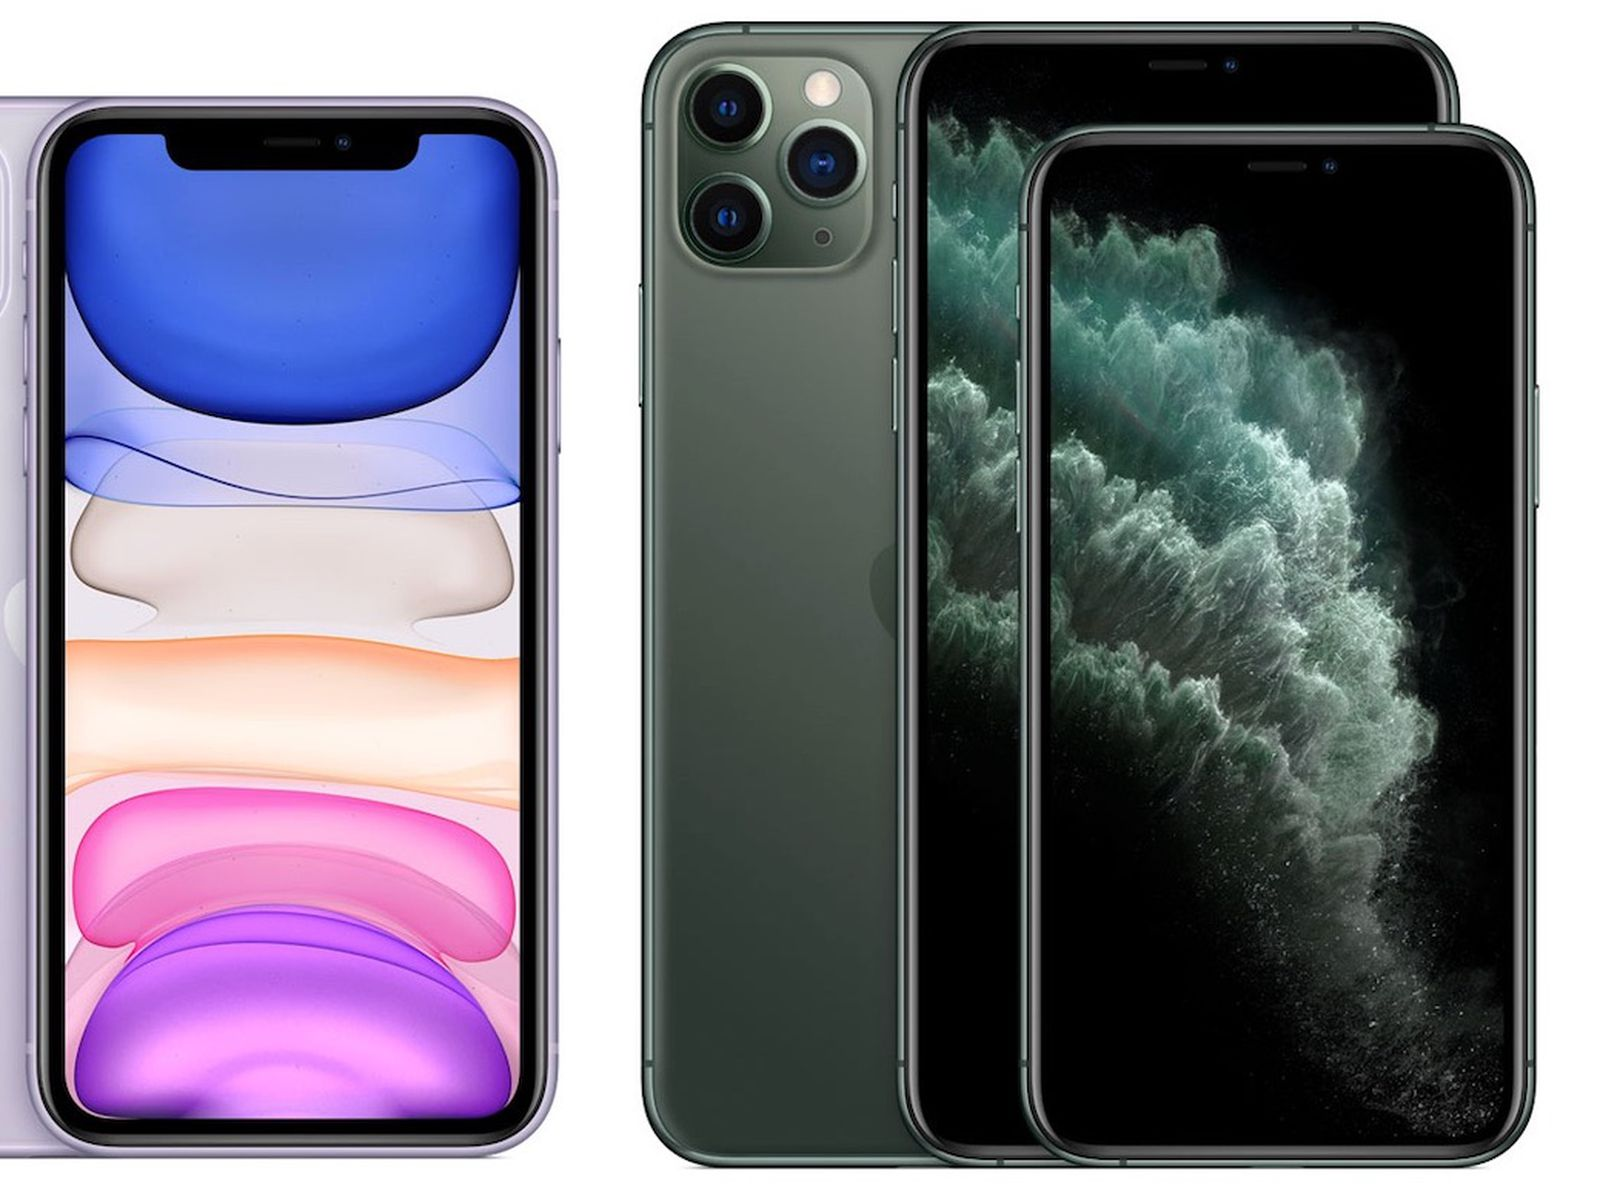 Iphone 11 Vs Iphone 11 Pro Buyer S Guide Macrumors